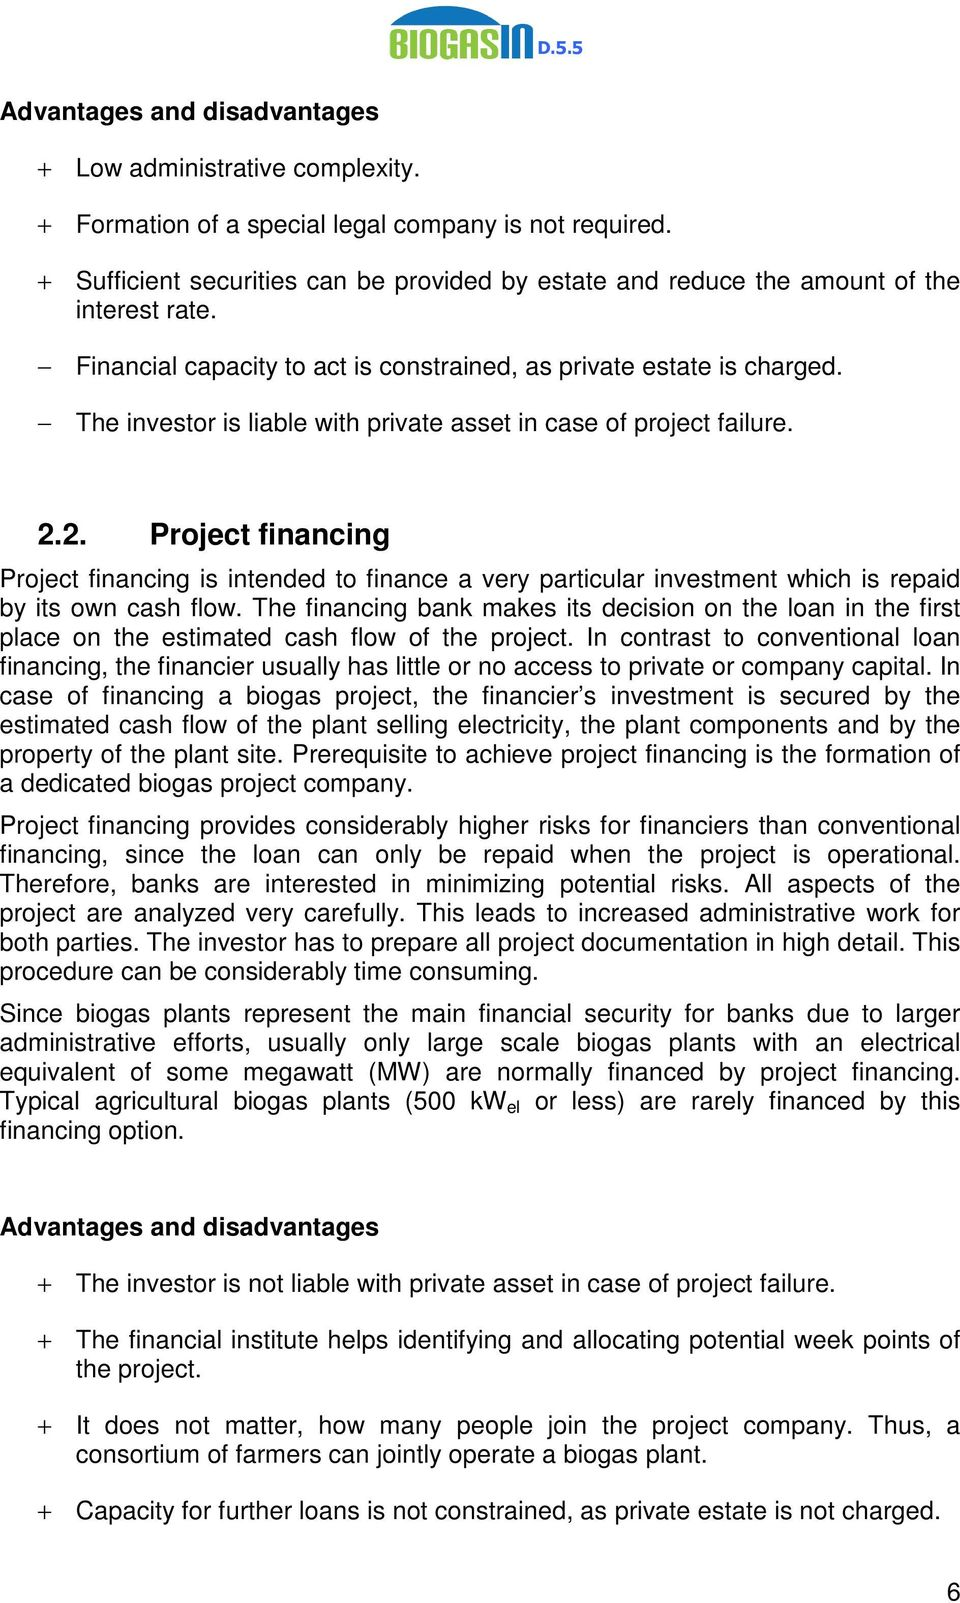 The investor is liable with private asset in case of project failure. 2.2. Project financing Project financing is intended to finance a very particular investment which is repaid by its own cash flow.